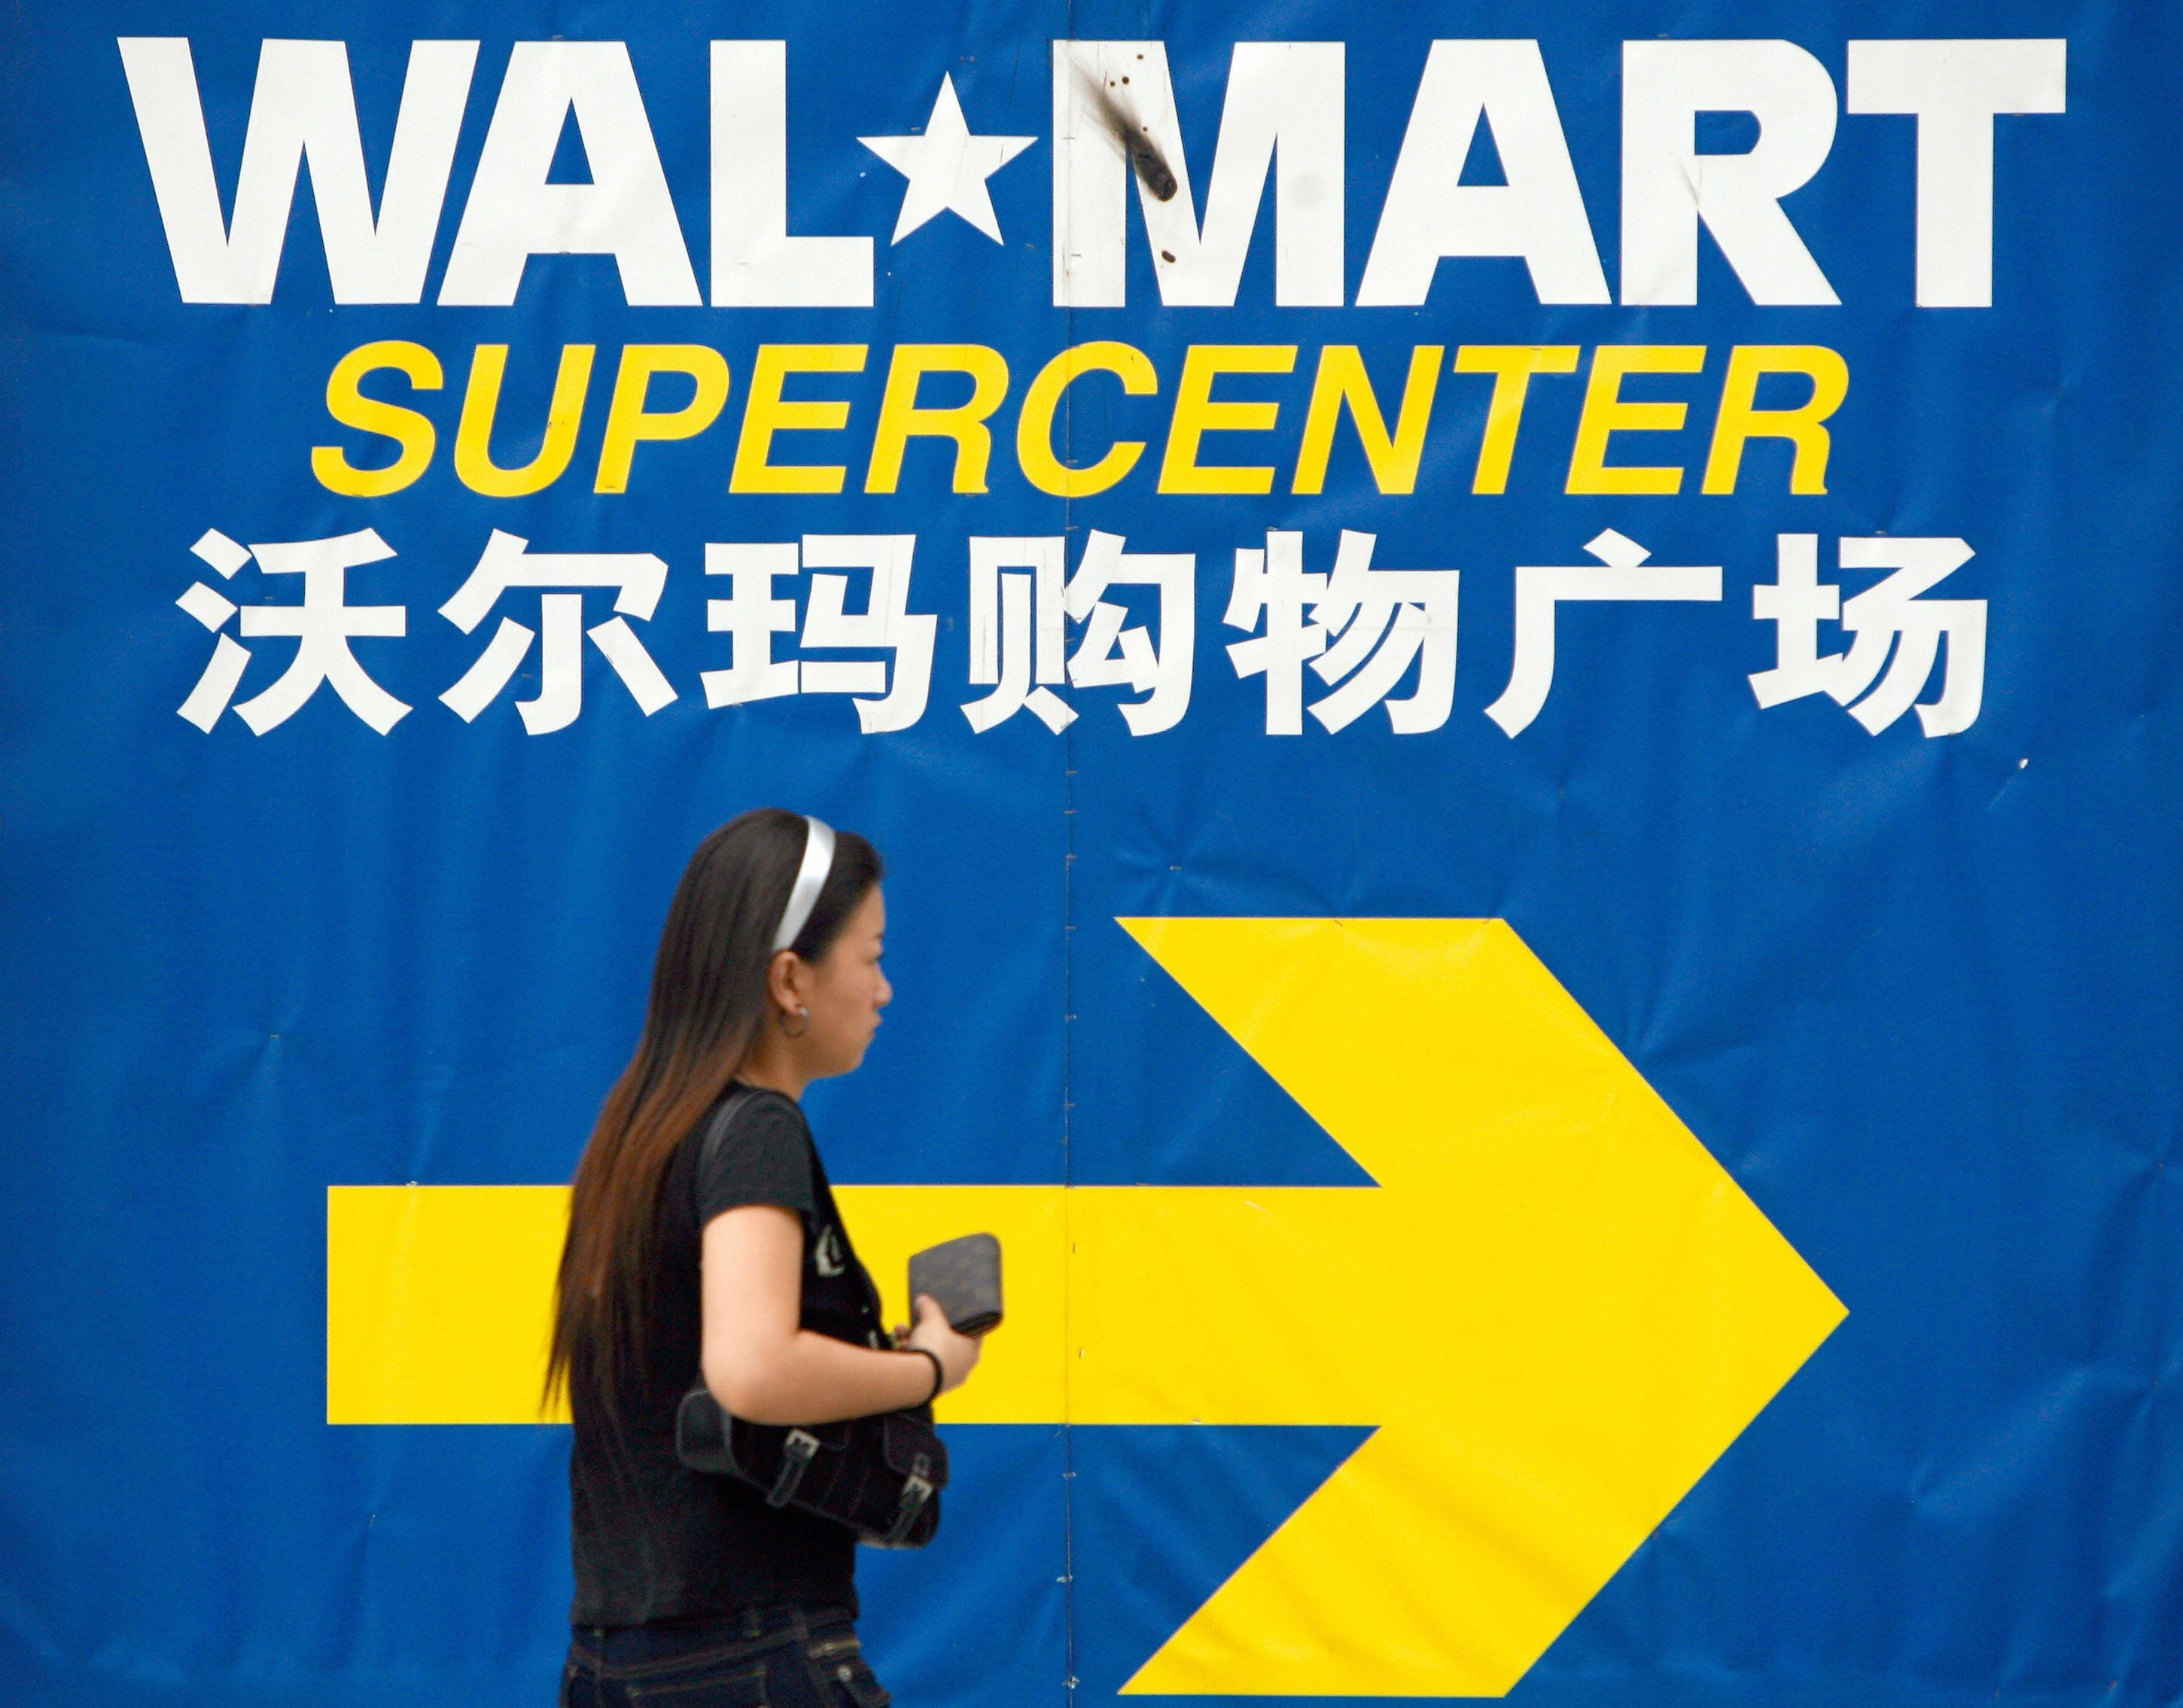 Beijing, CHINA: A pedestrian walks past a Wal-Mart signboard in Beijing, 26 July 2007. US retail giant Wal-Mart Stores Inc said on 25 July it has cautioned two of its Chinese suppliers amid allegations they exploited workers as the companies were among four accused in June of a range of labour violations in the production of official merchandise for the 2008 Beijing Olympics. AFP PHOTO/TEH ENG KOON (Photo credit should read TEH ENG KOON/AFP/Getty Images)